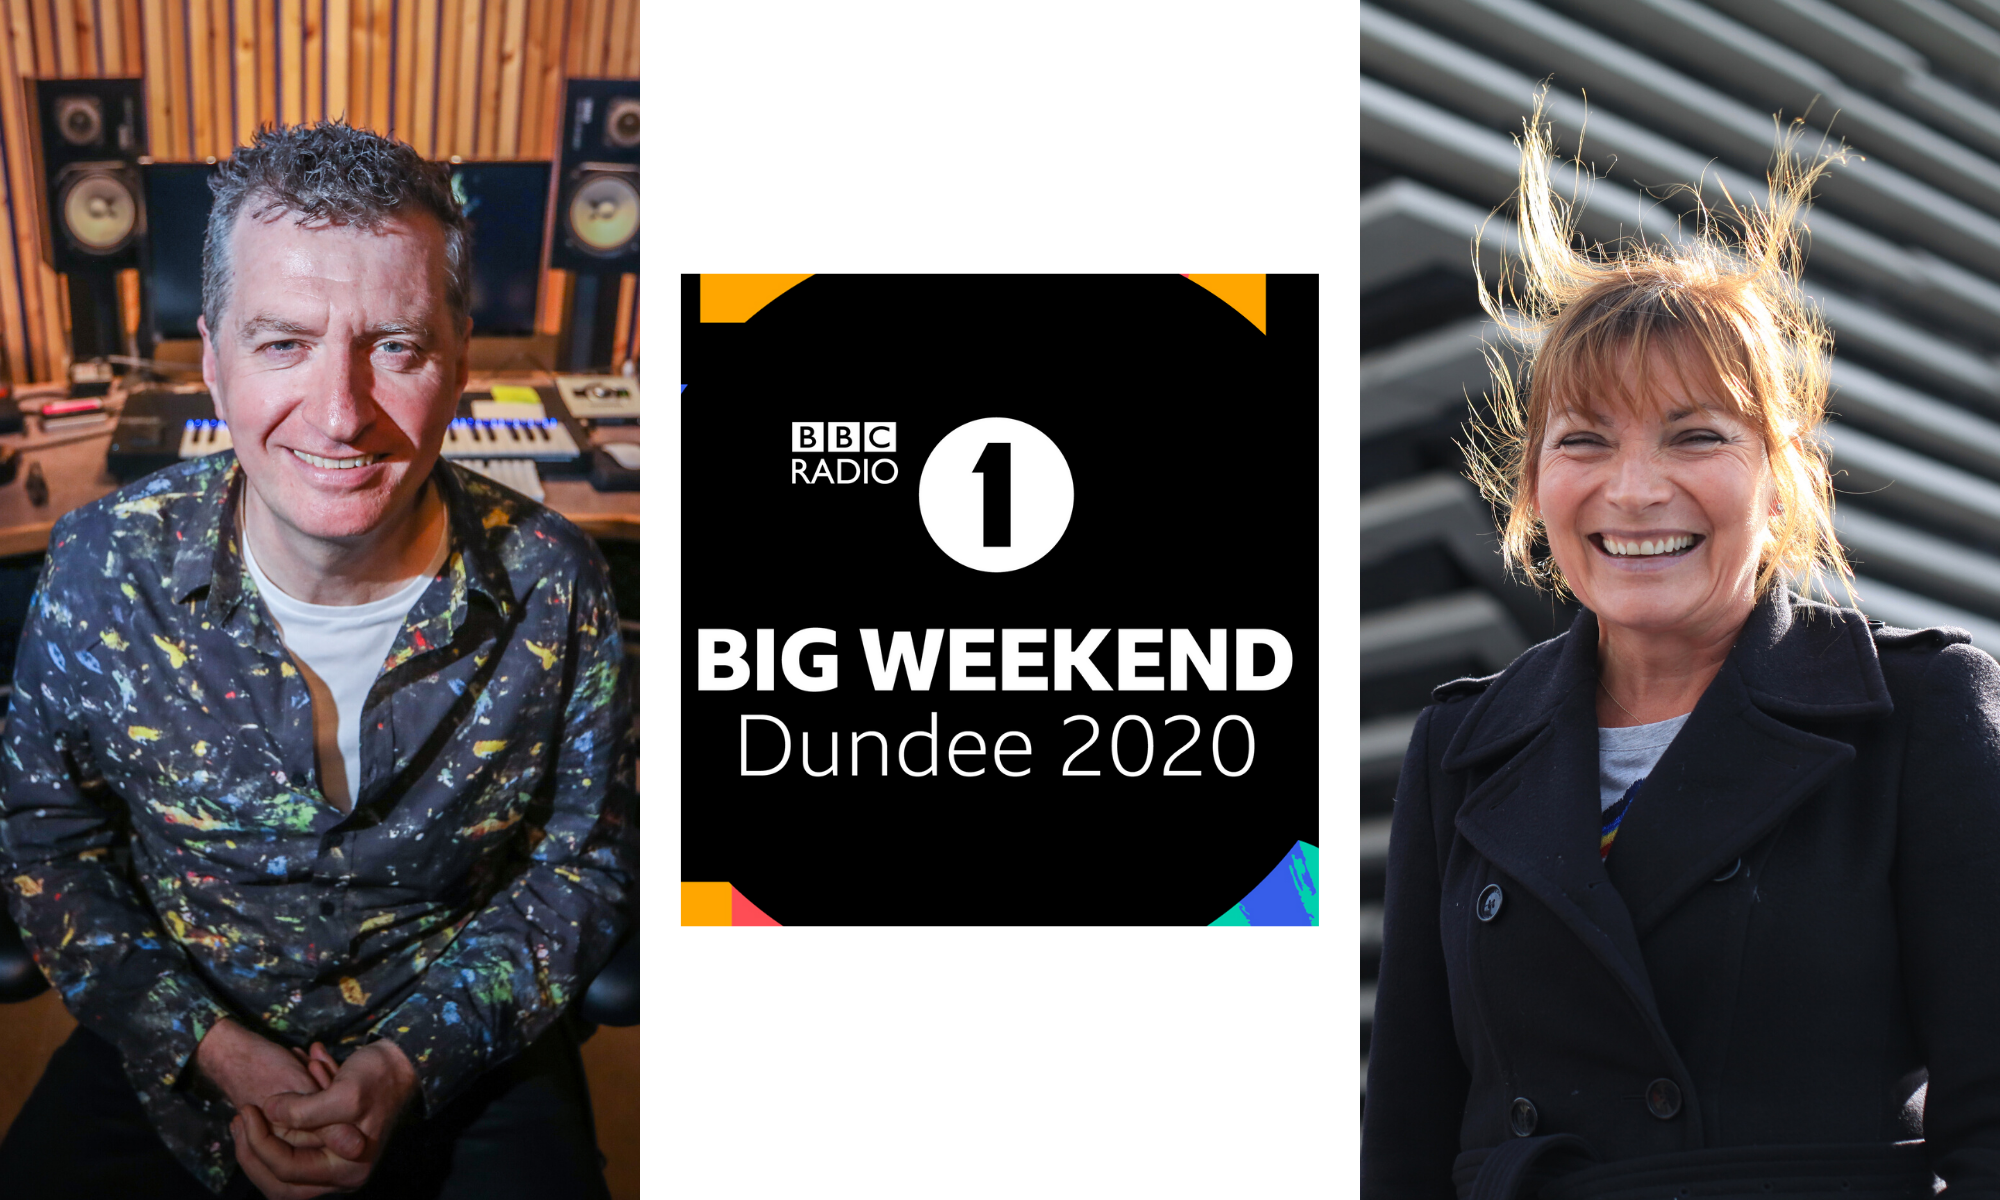 Simple Minds bassist Ged Grimes and Lorraine Kelly are among those praising the Big Weekend announcement.